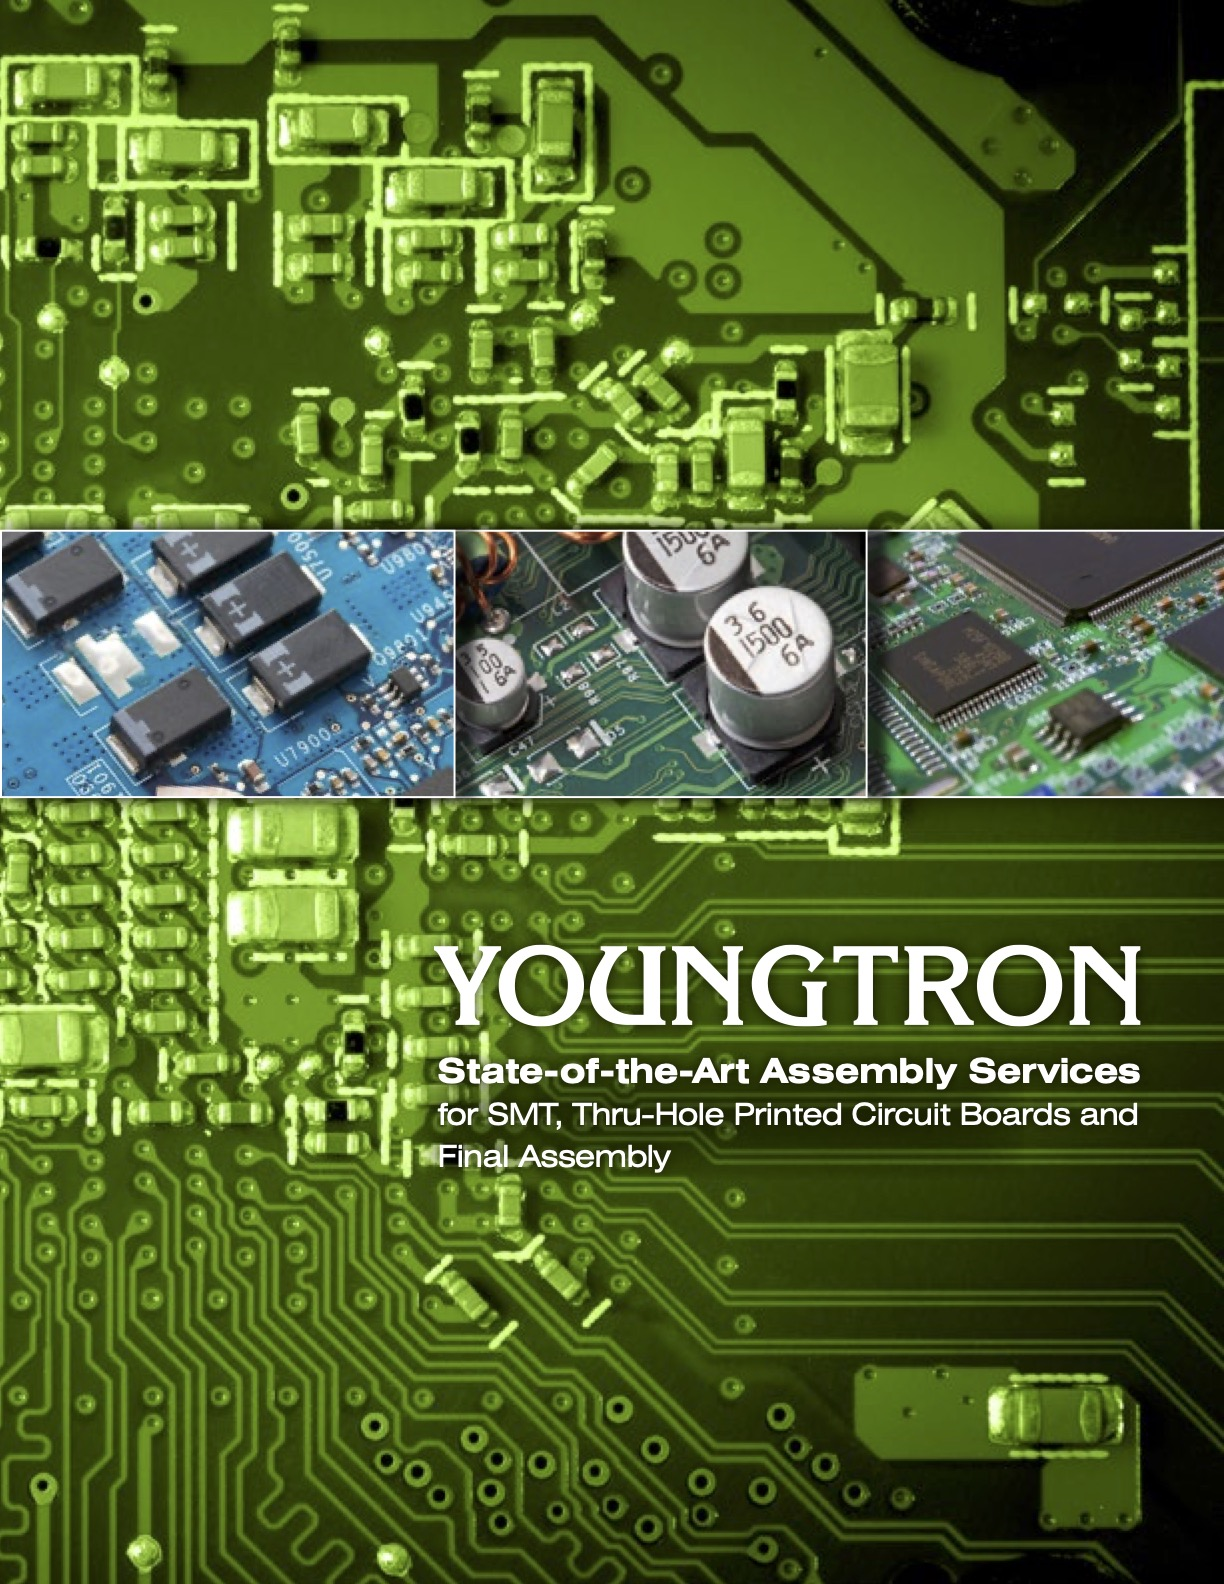 Youngtron Brochure 1